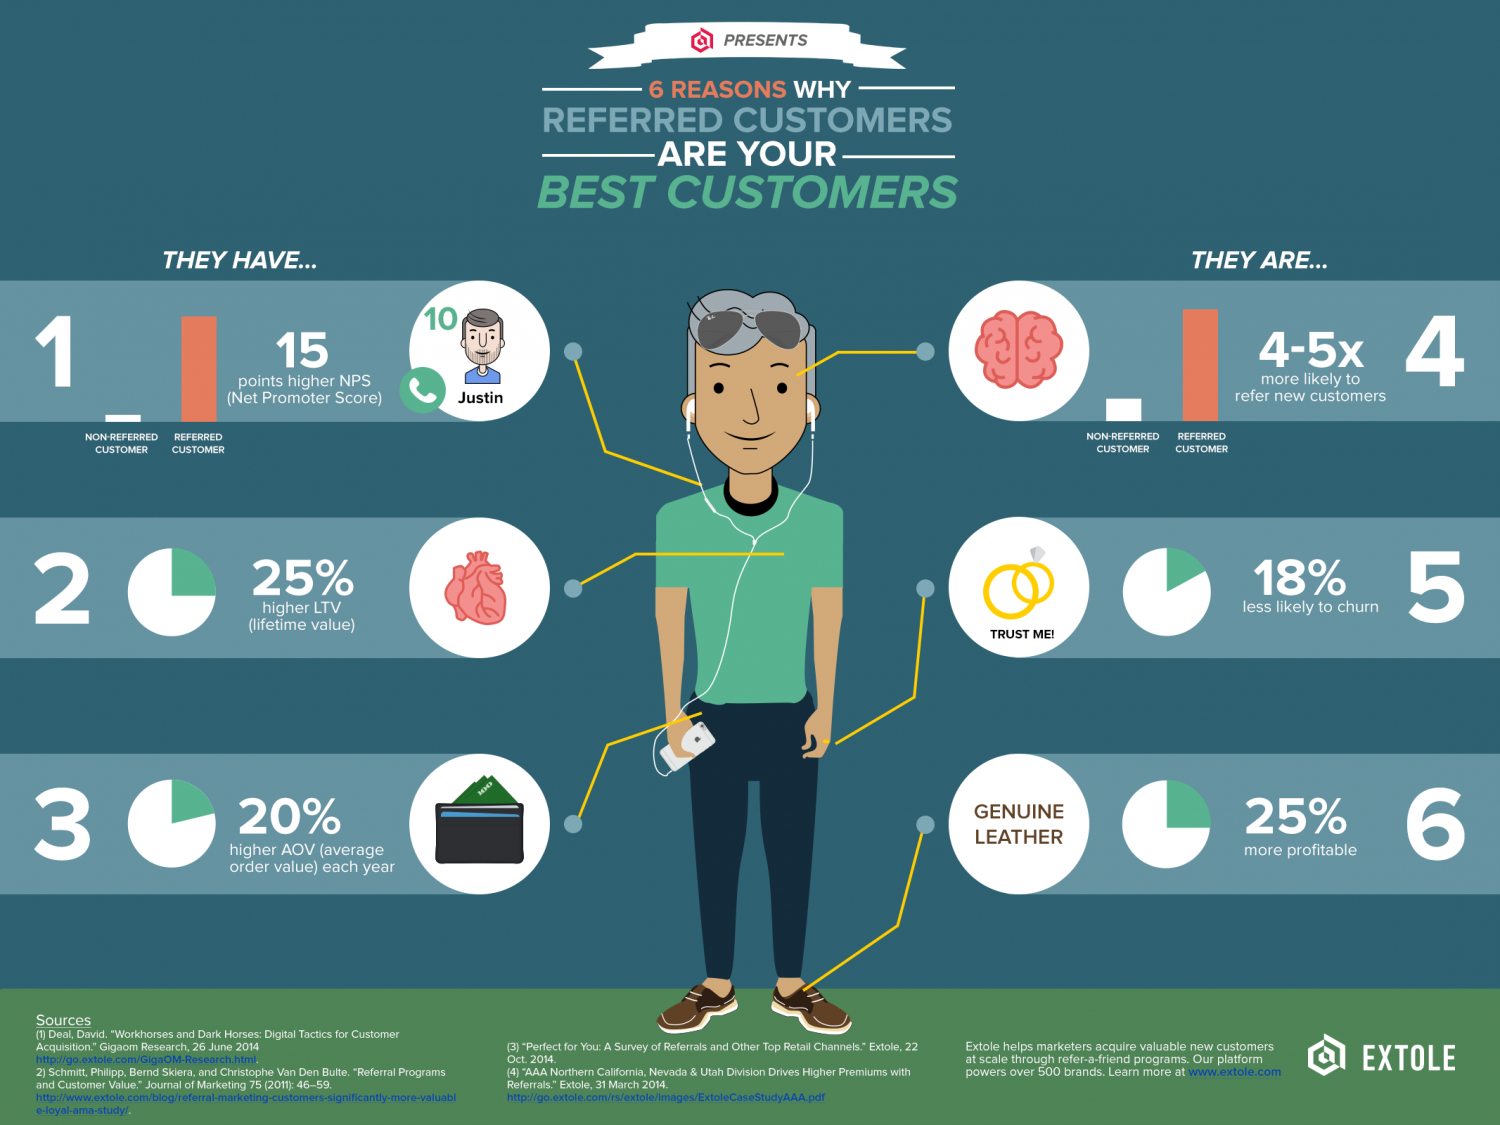 6 Reasons Why Referred Customers Are Your Best Customers Infographic